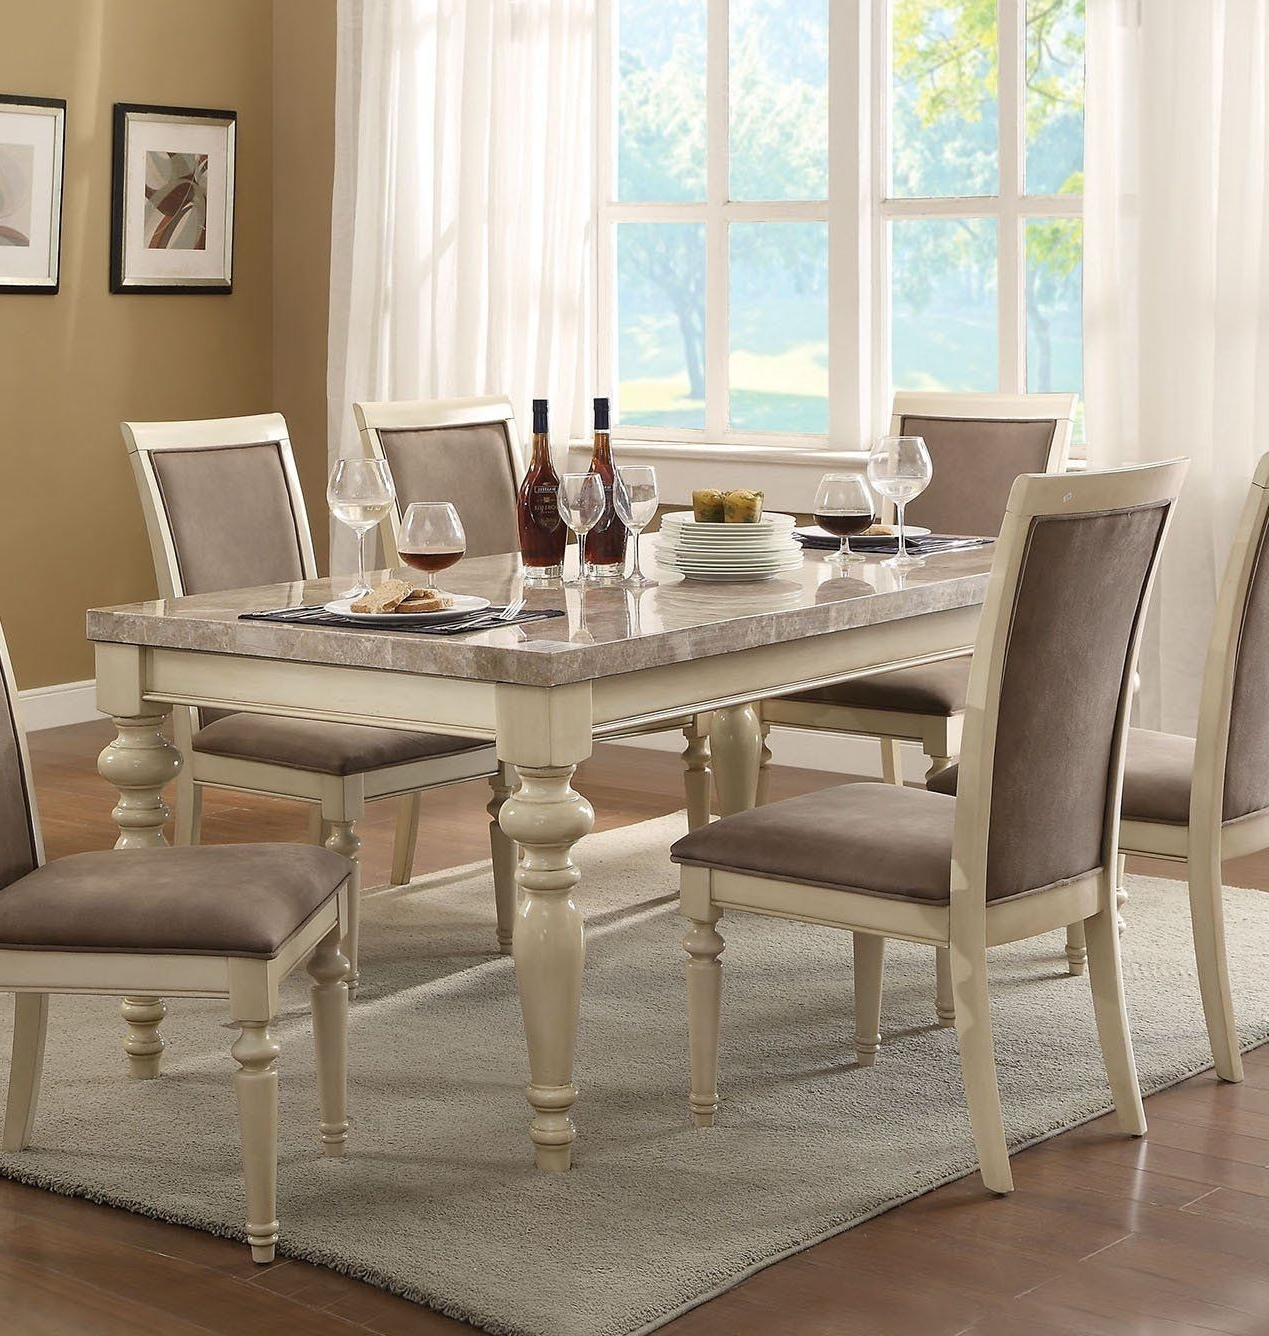 Acme 71705 Ryder Antique White Marble Top Dining Table (View 13 of 25)